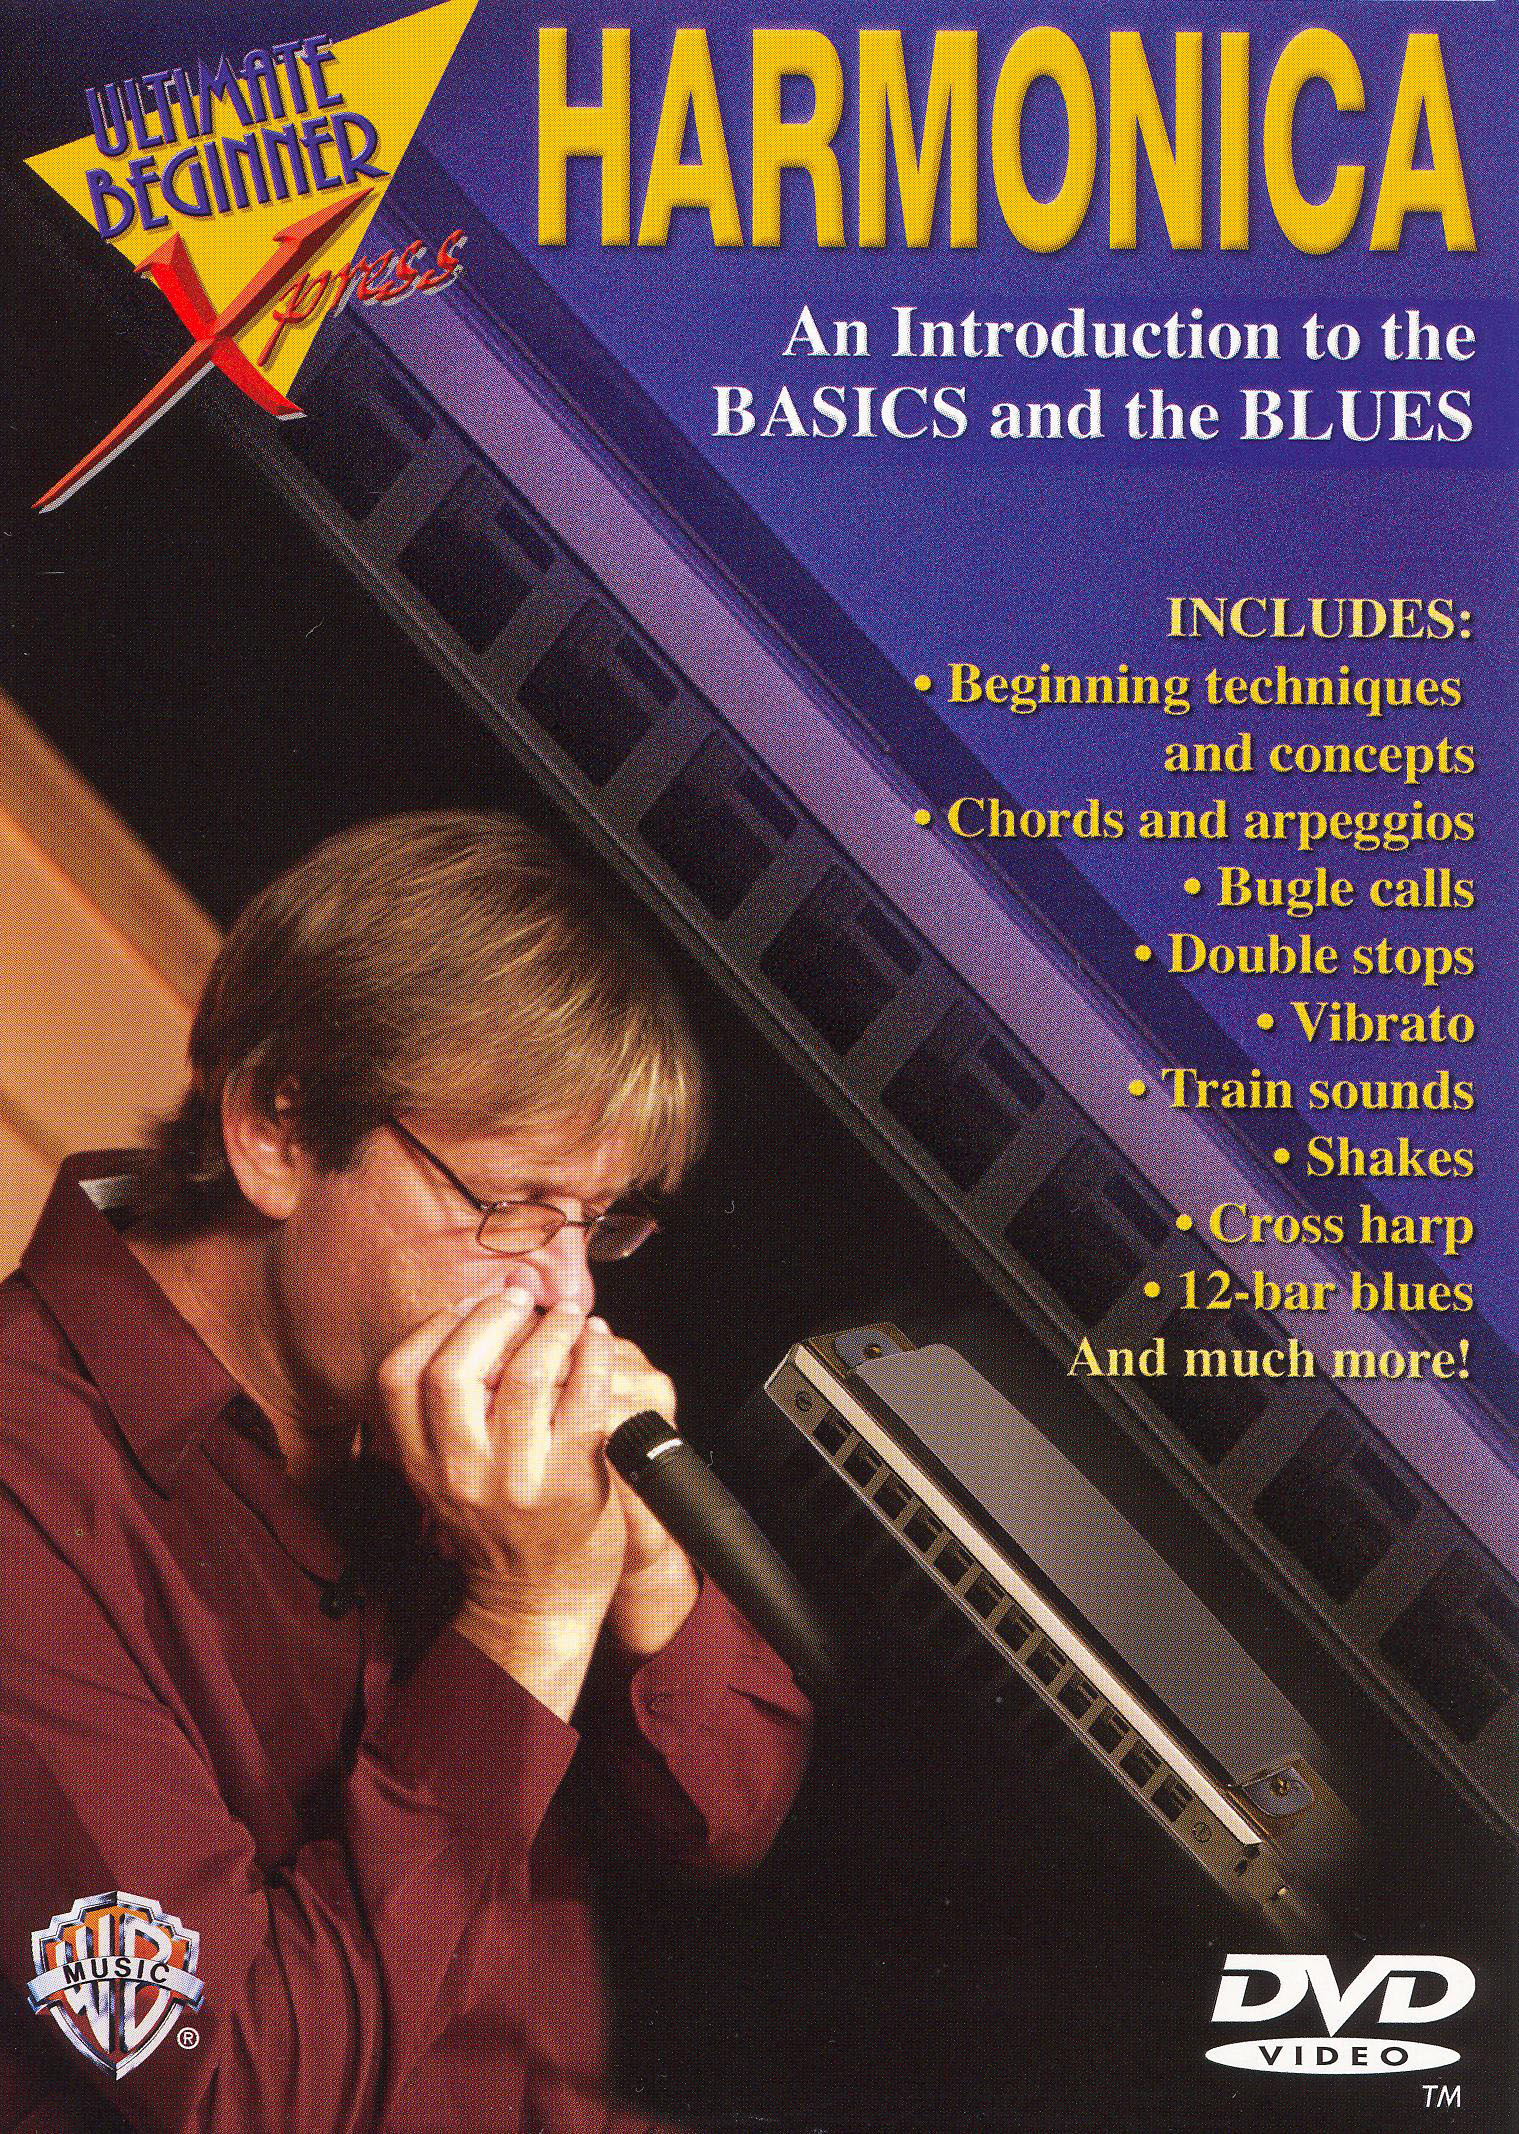 Ultimate Beginner Xpress: An Introduction to Musical Styles - Harmonica